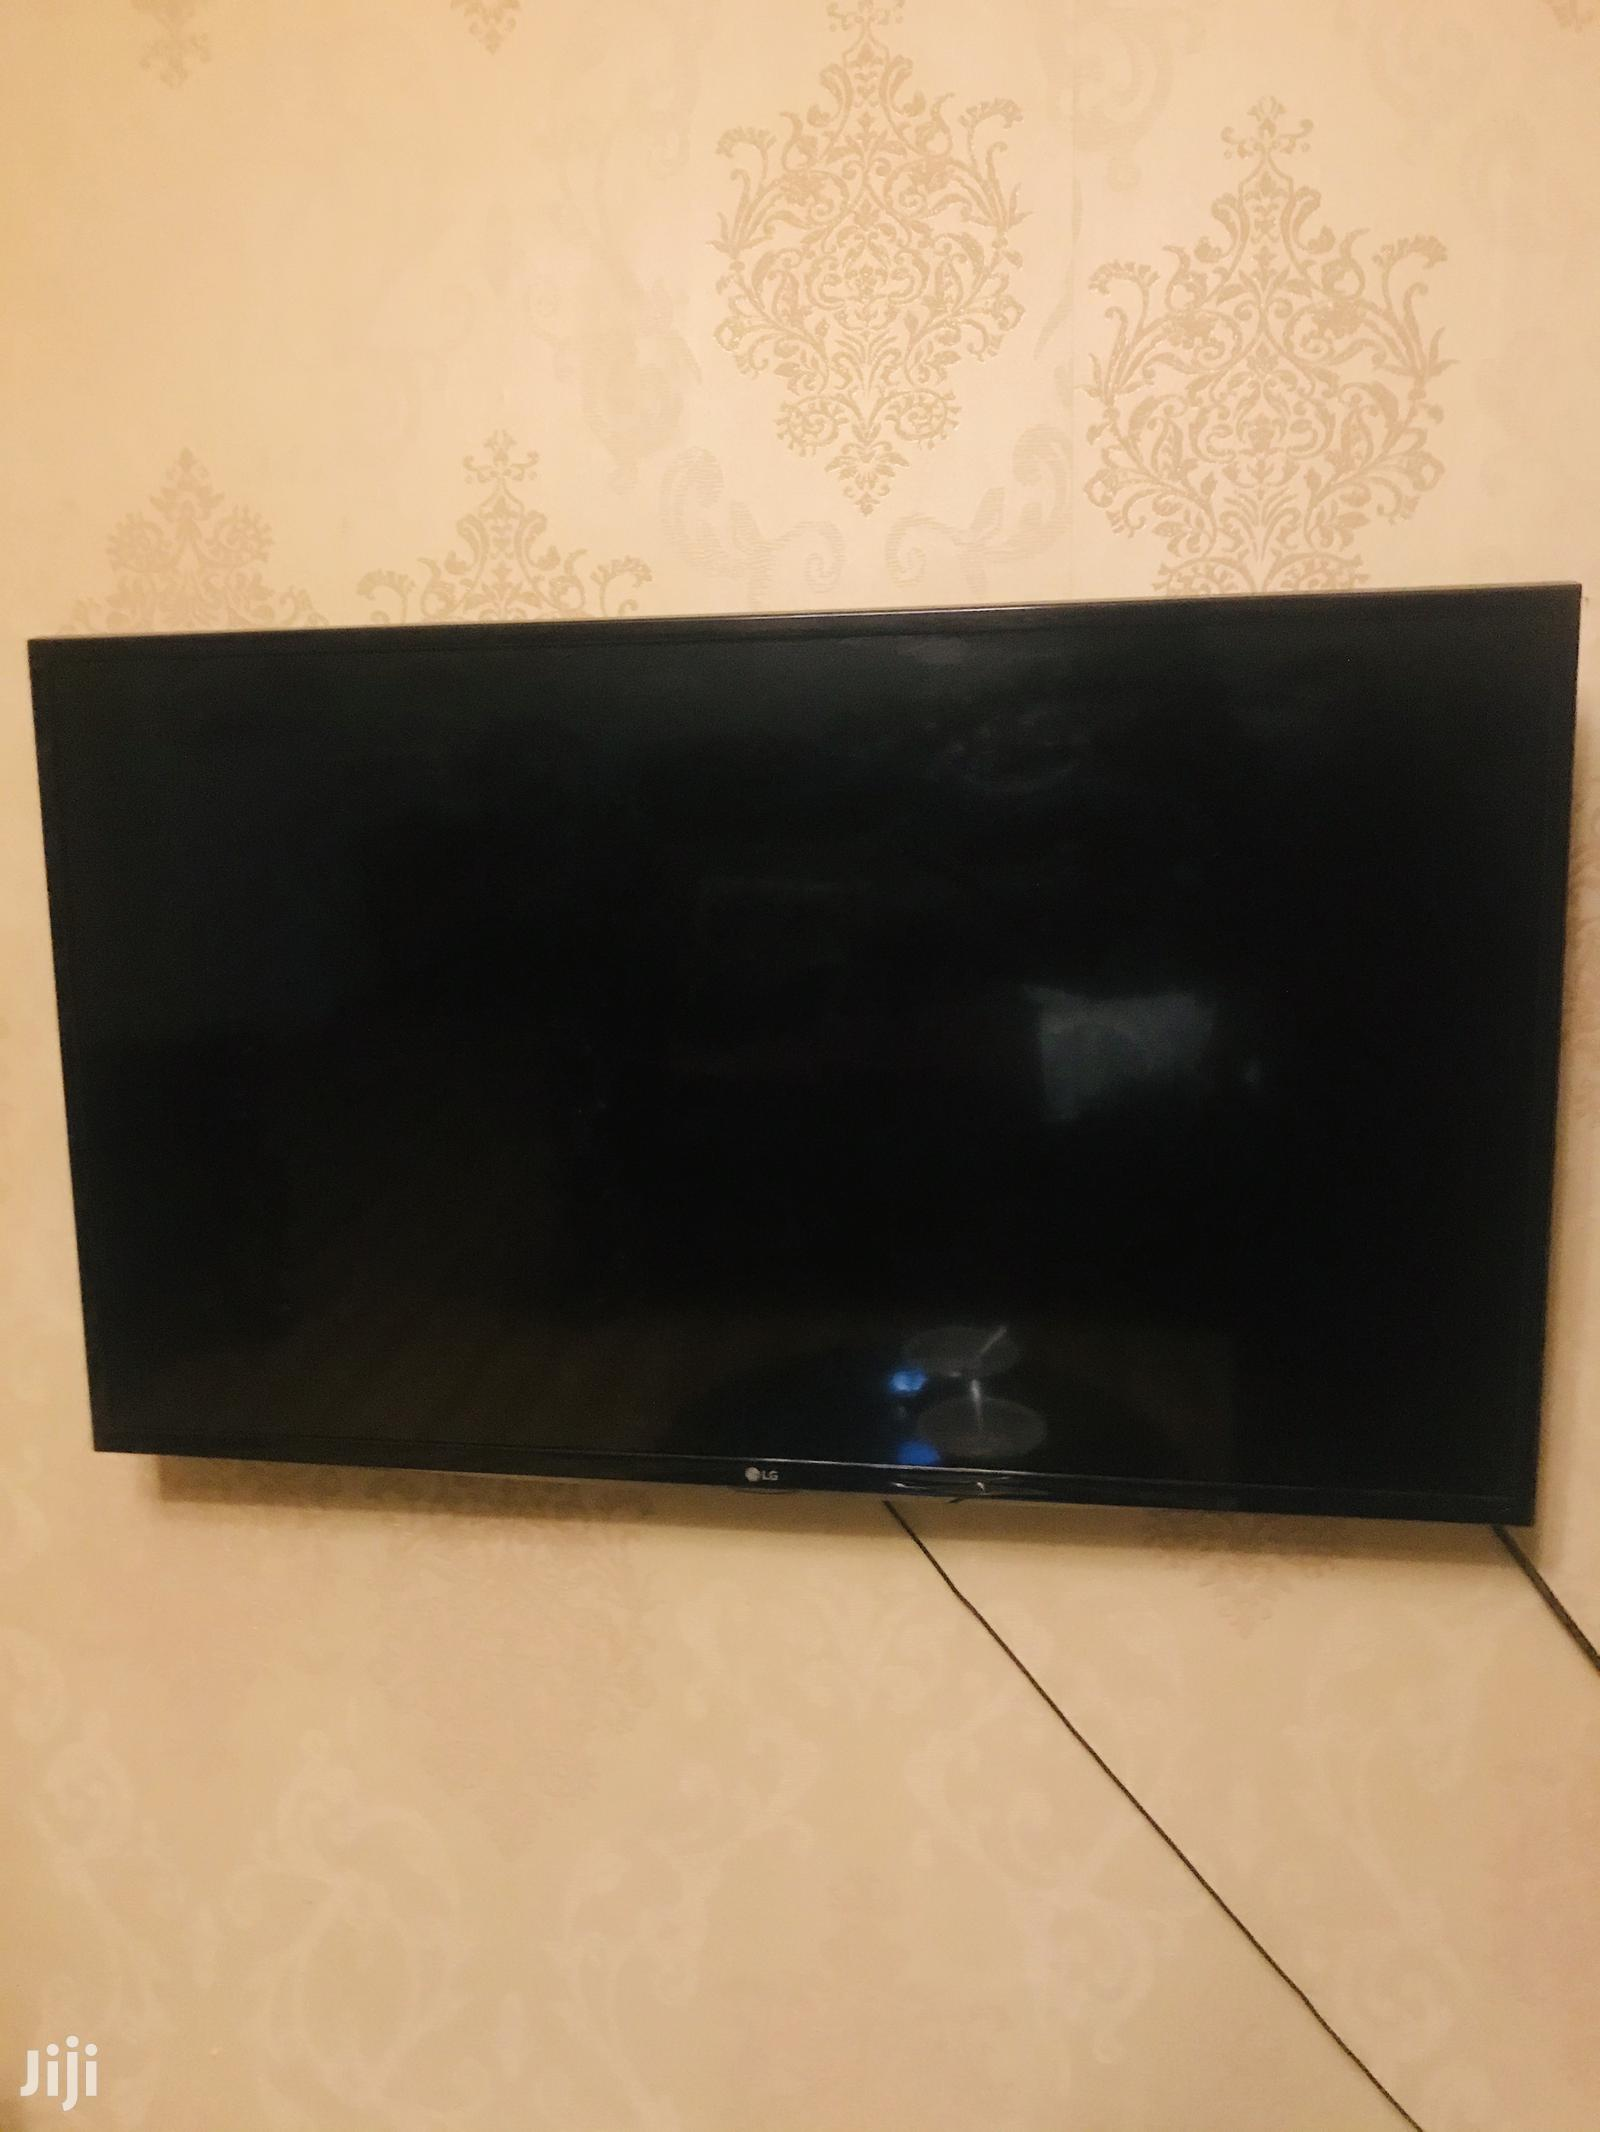 43 Inch LG TV | TV & DVD Equipment for sale in South B, Nairobi, Kenya